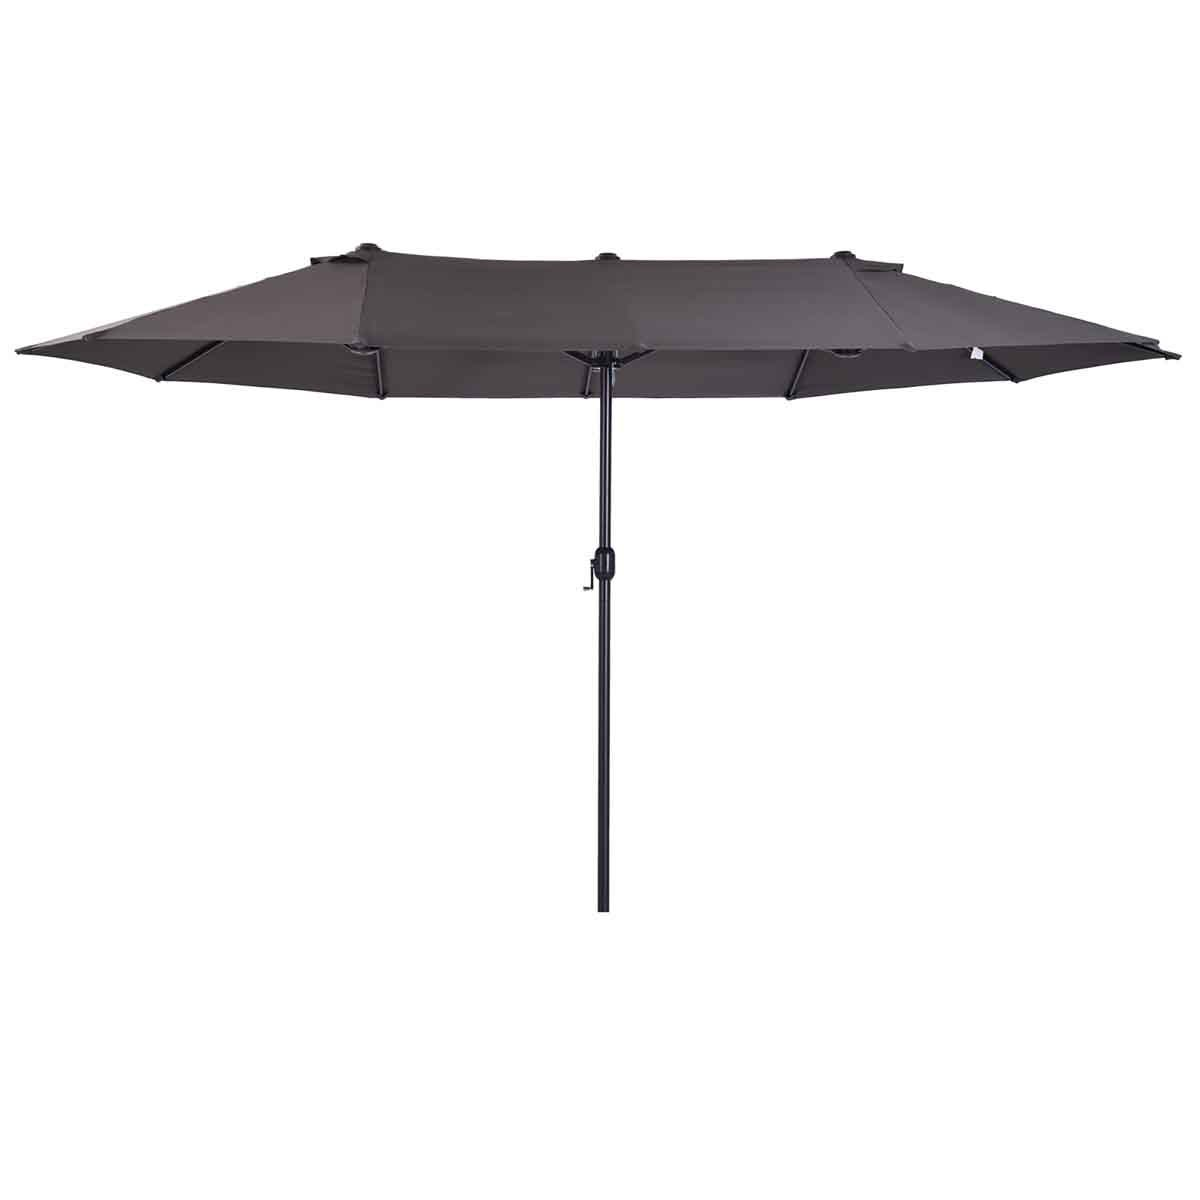 Outsunny 4.6m Double Canopy Parasol (base not included) - Dark Grey